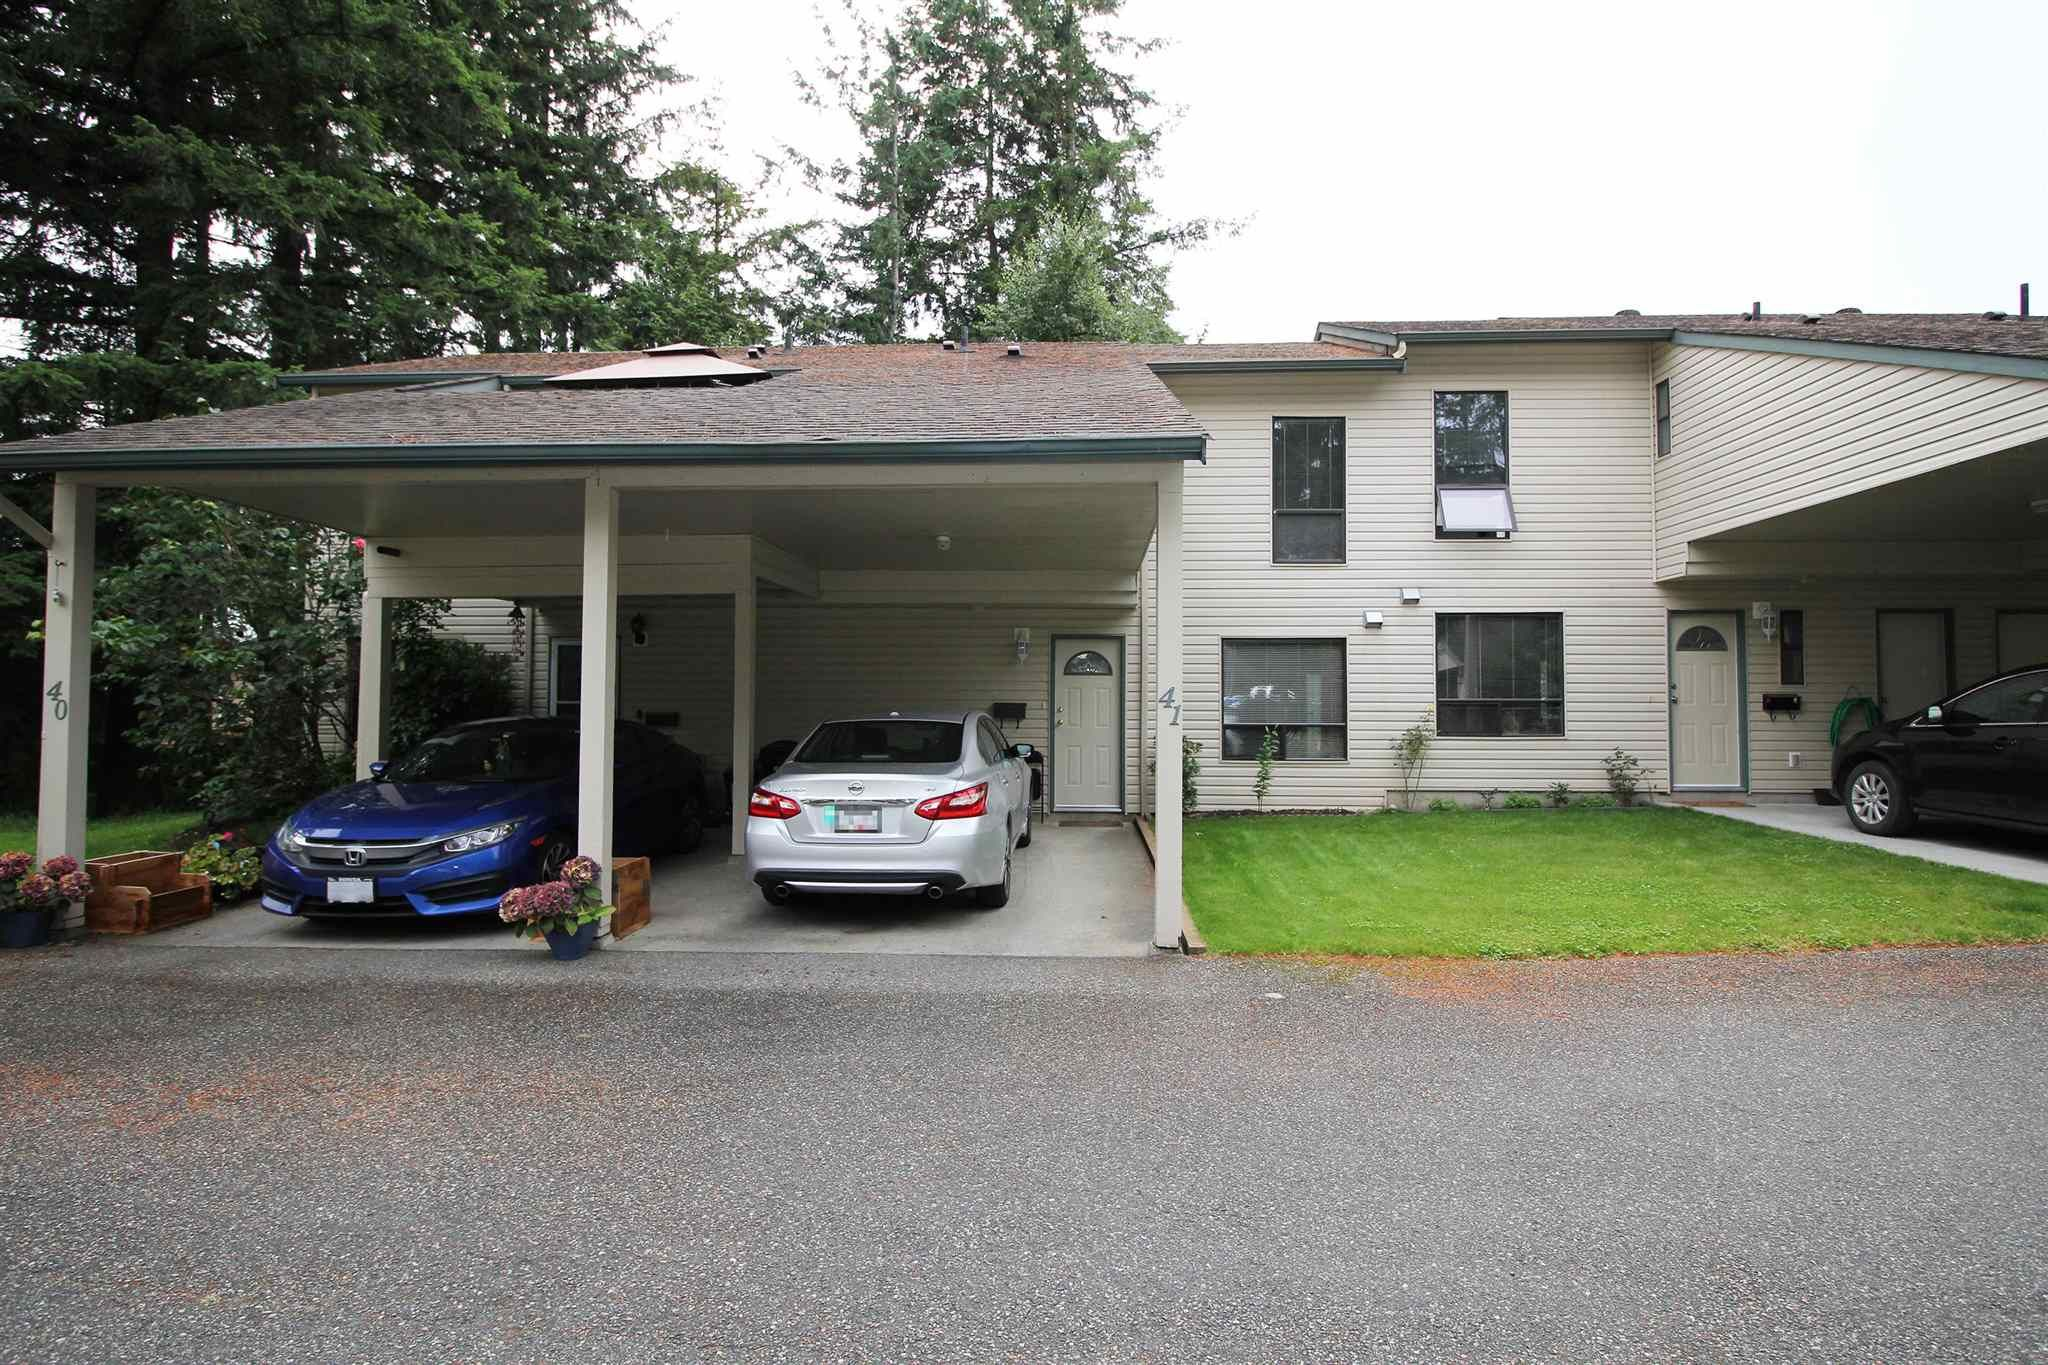 """Main Photo: 41 32310 MOUAT Drive in Abbotsford: Abbotsford West Townhouse for sale in """"Mouat Gardens"""" : MLS®# R2604336"""